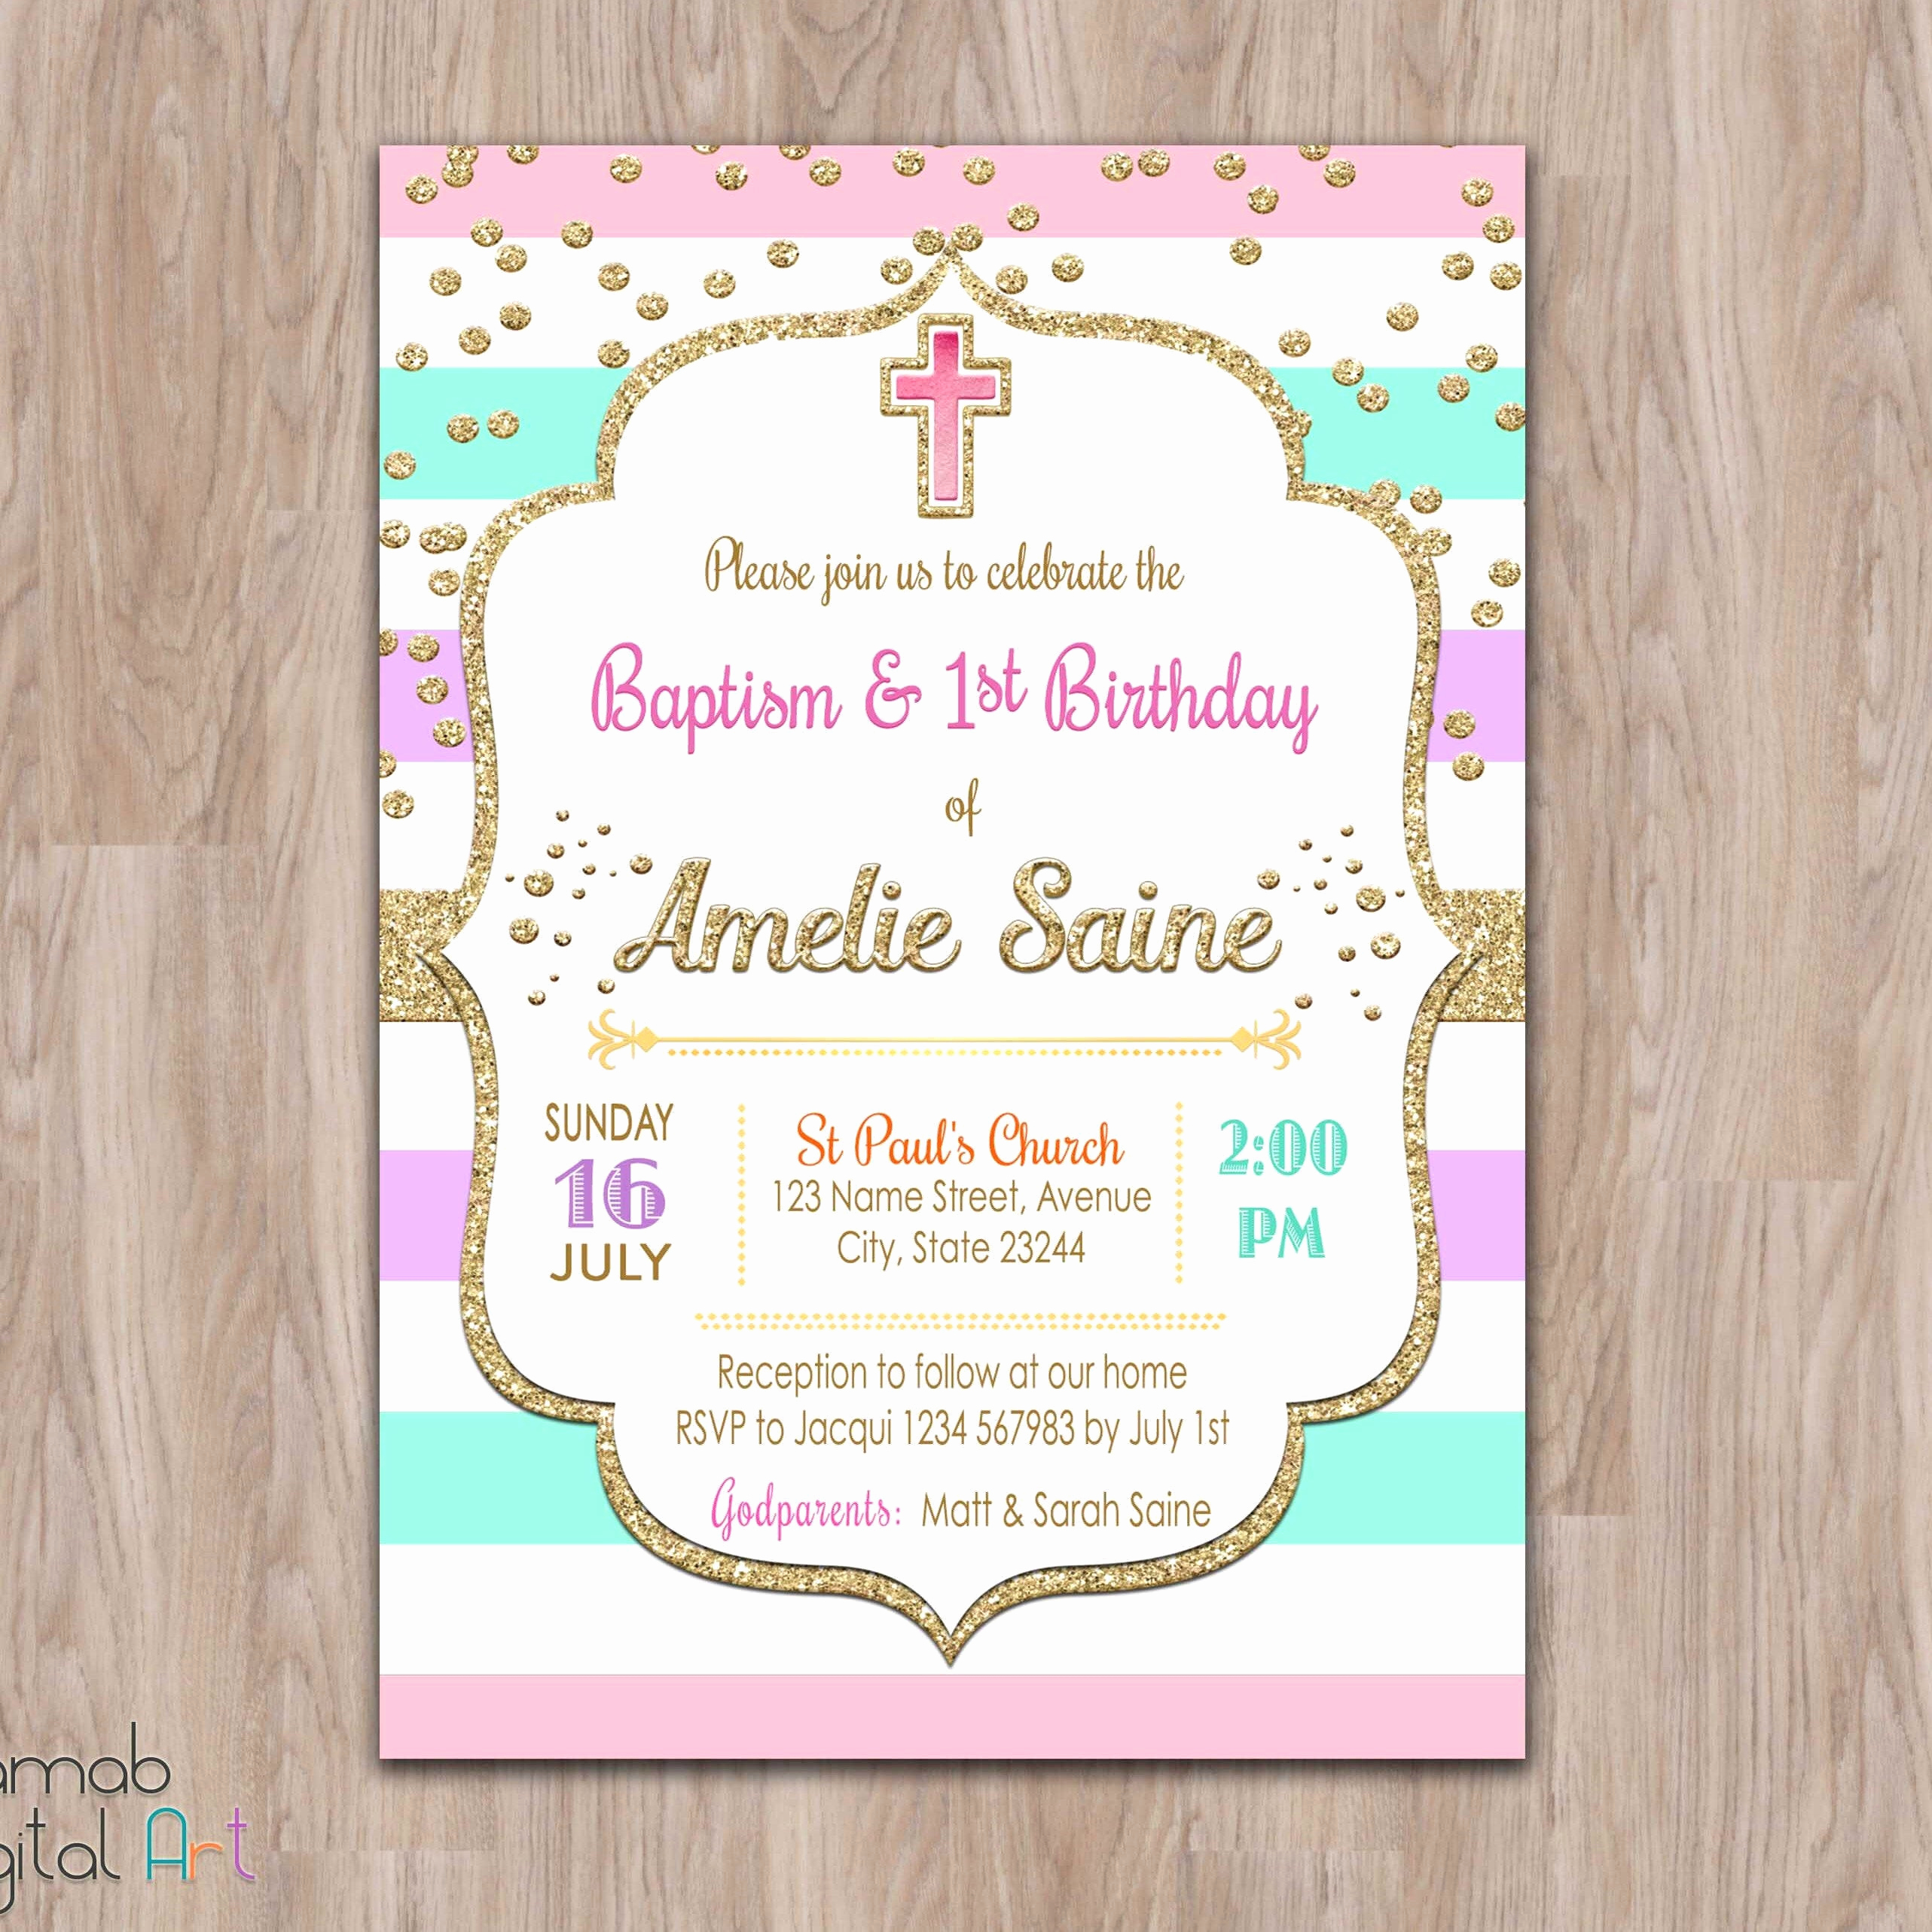 Christening and Birthday Invitation Luxury Baptism and Birthday Invitation 1st Birthday Baptism Invites